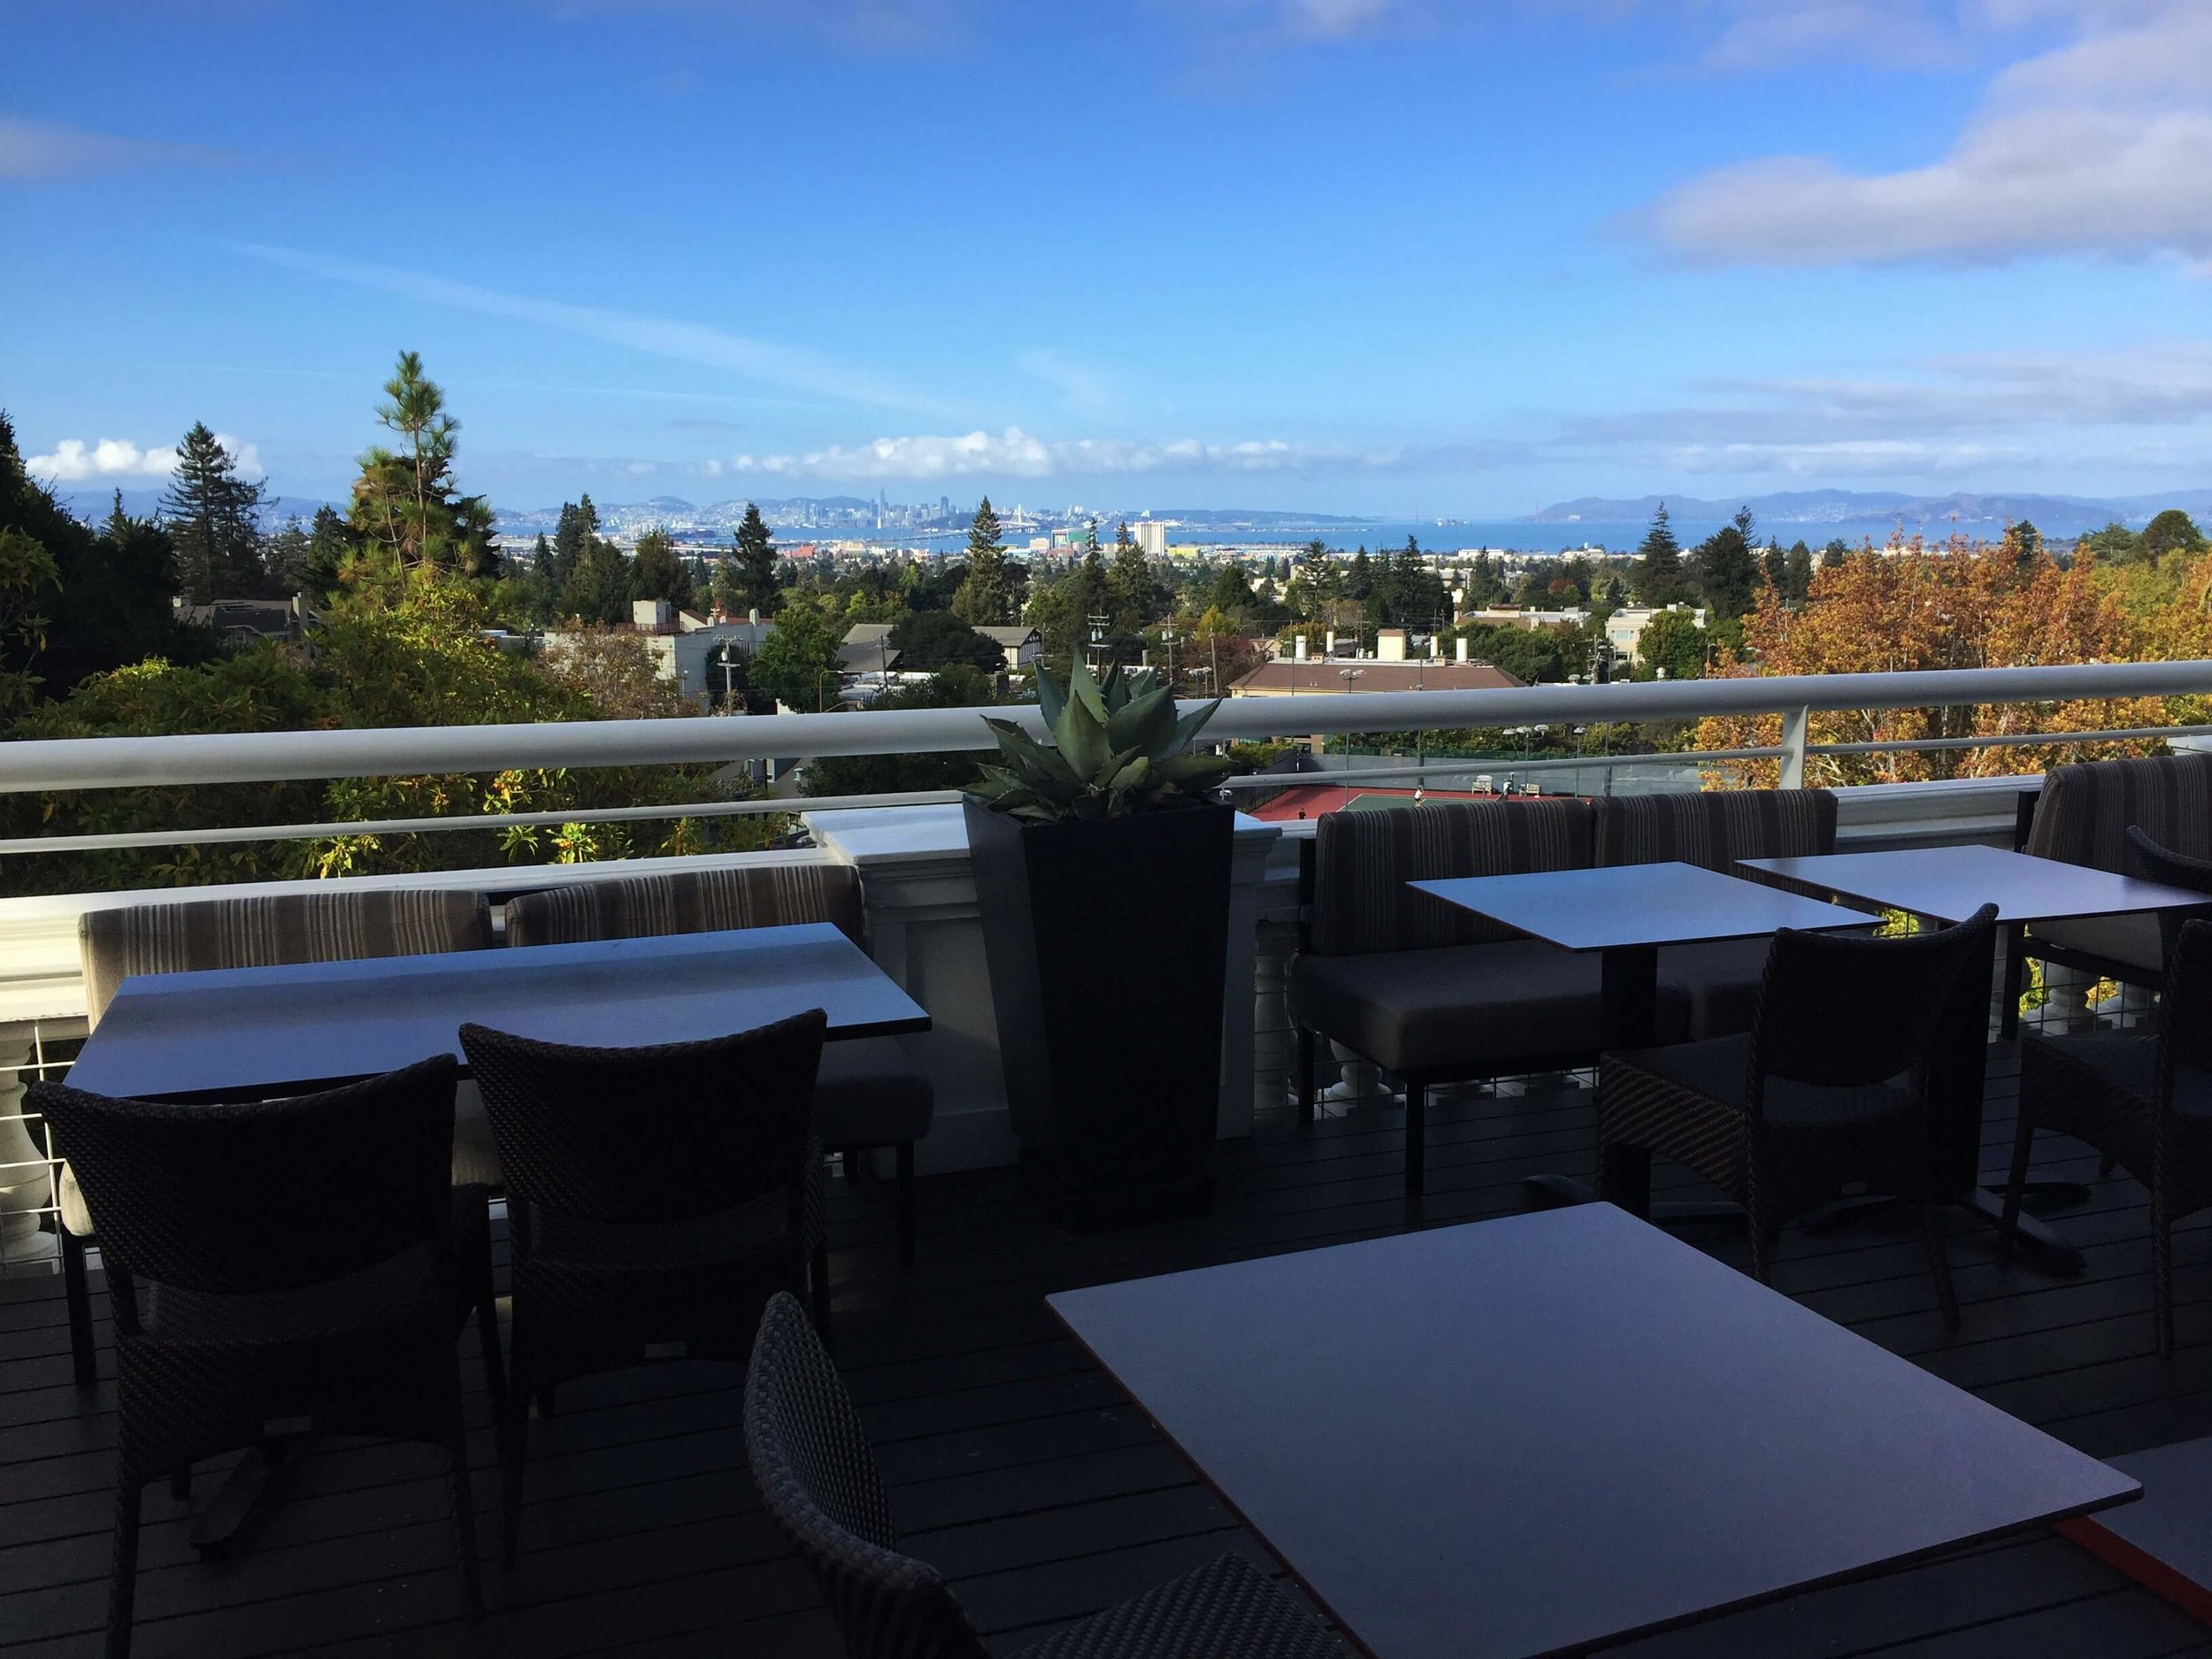 The best view of any bar in Berkeley (Claremont Hotel Bar and Restaurant, Berkeley).